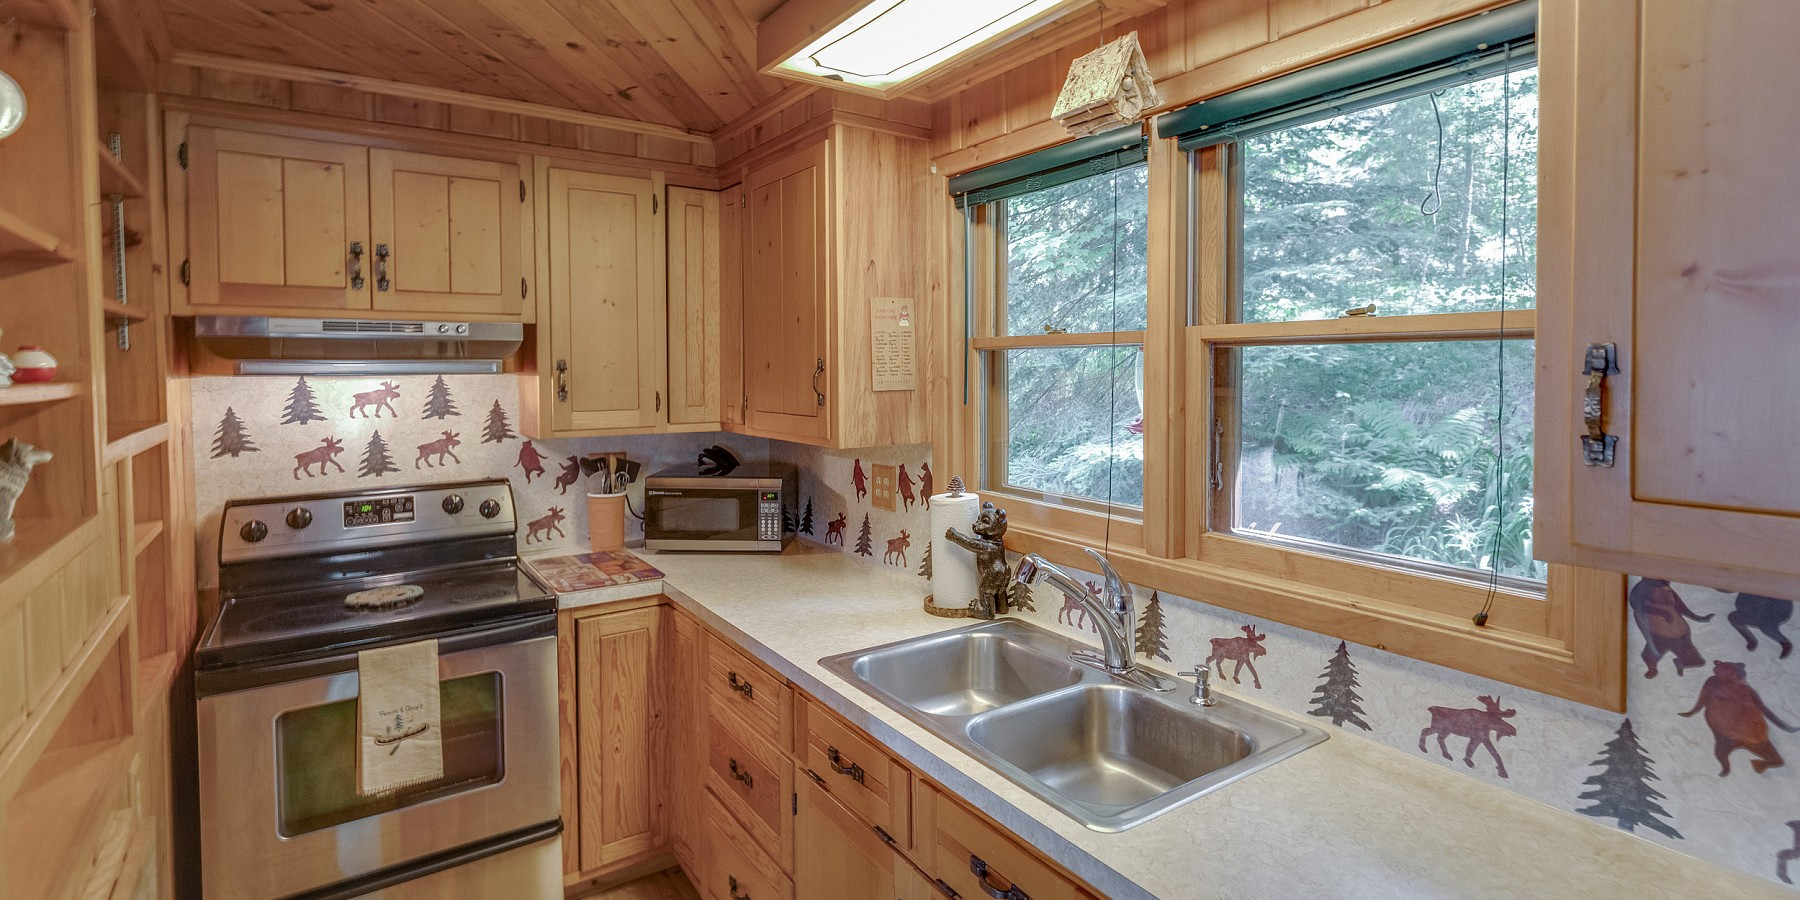 421 COUNTY ROAD 43, PINE RIVER, MN 56474